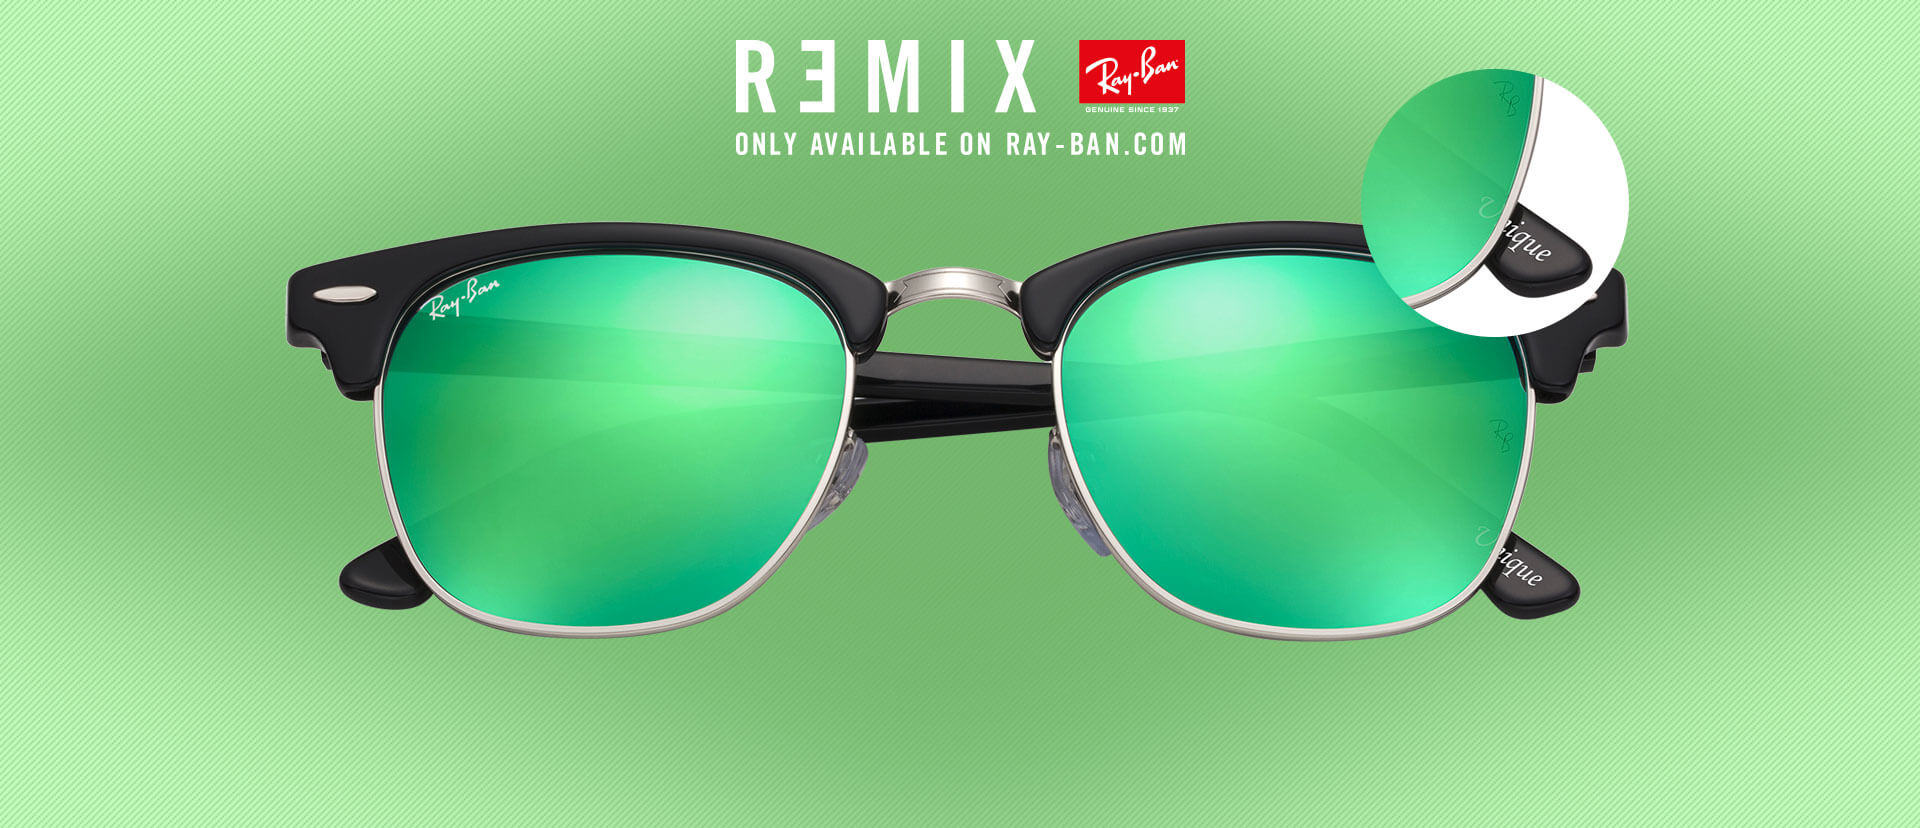 Ray-Ban customize